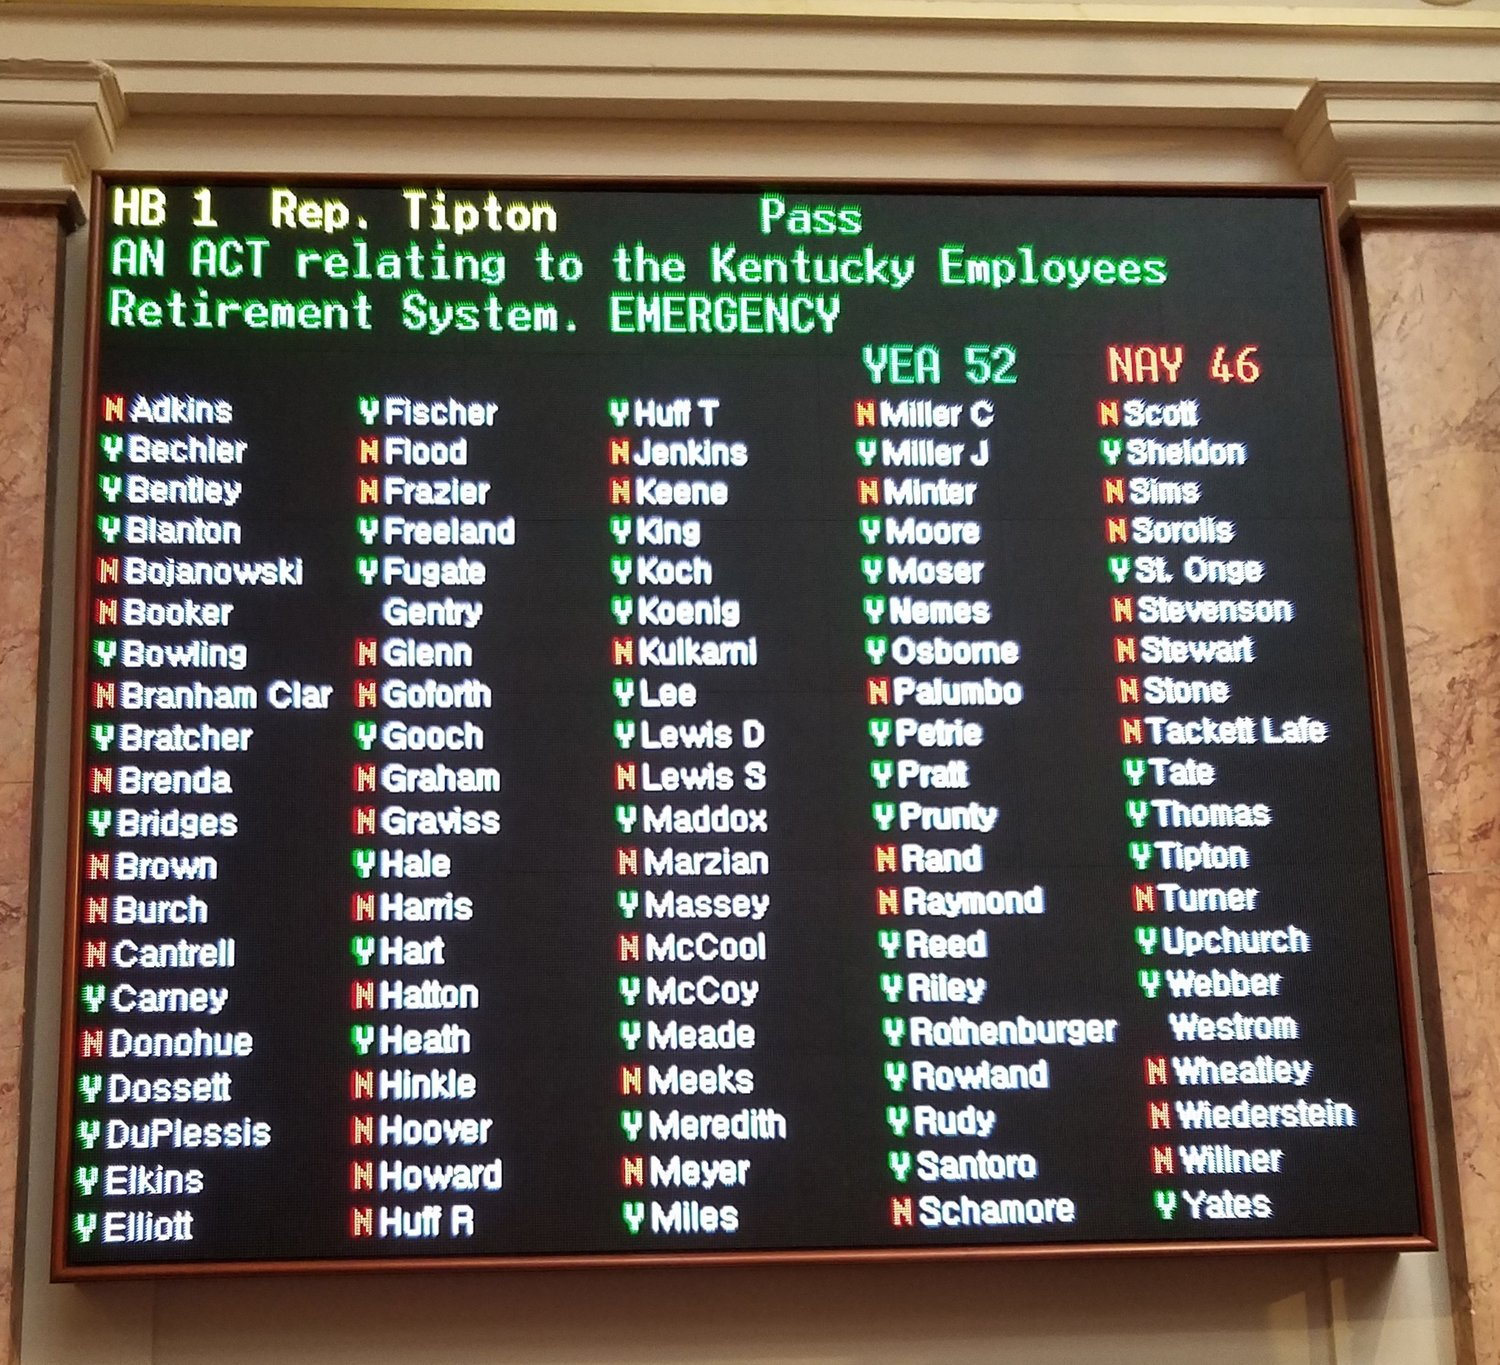 House Bill 1 had a narrow escape with 52 votes. It needed 51 for passage. (Kentucky Today/Tom Latek)